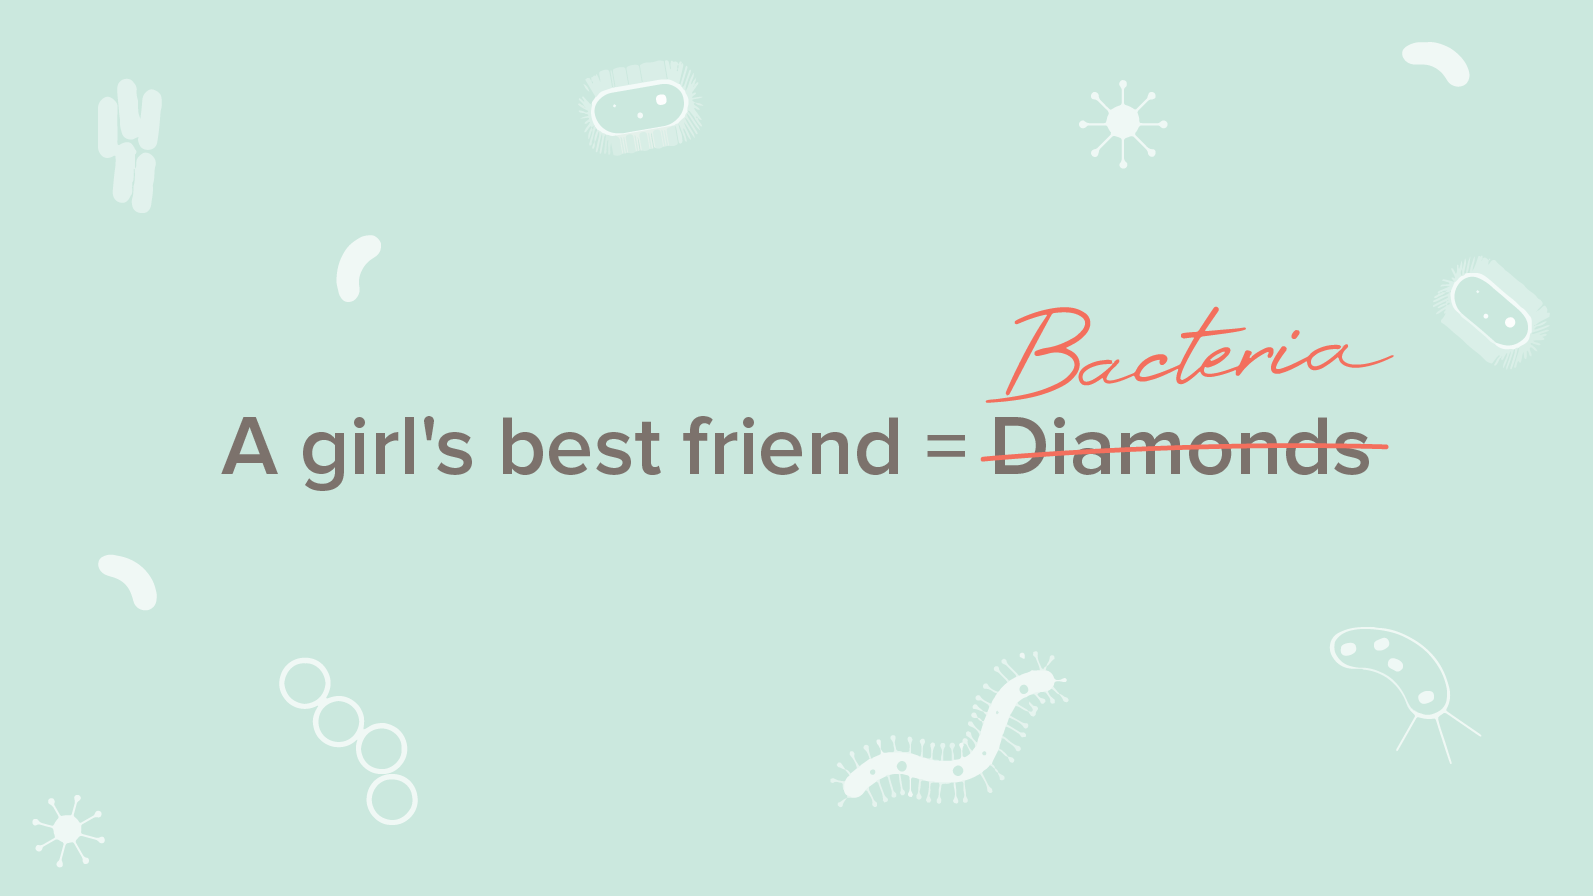 Who is a woman's best friend?